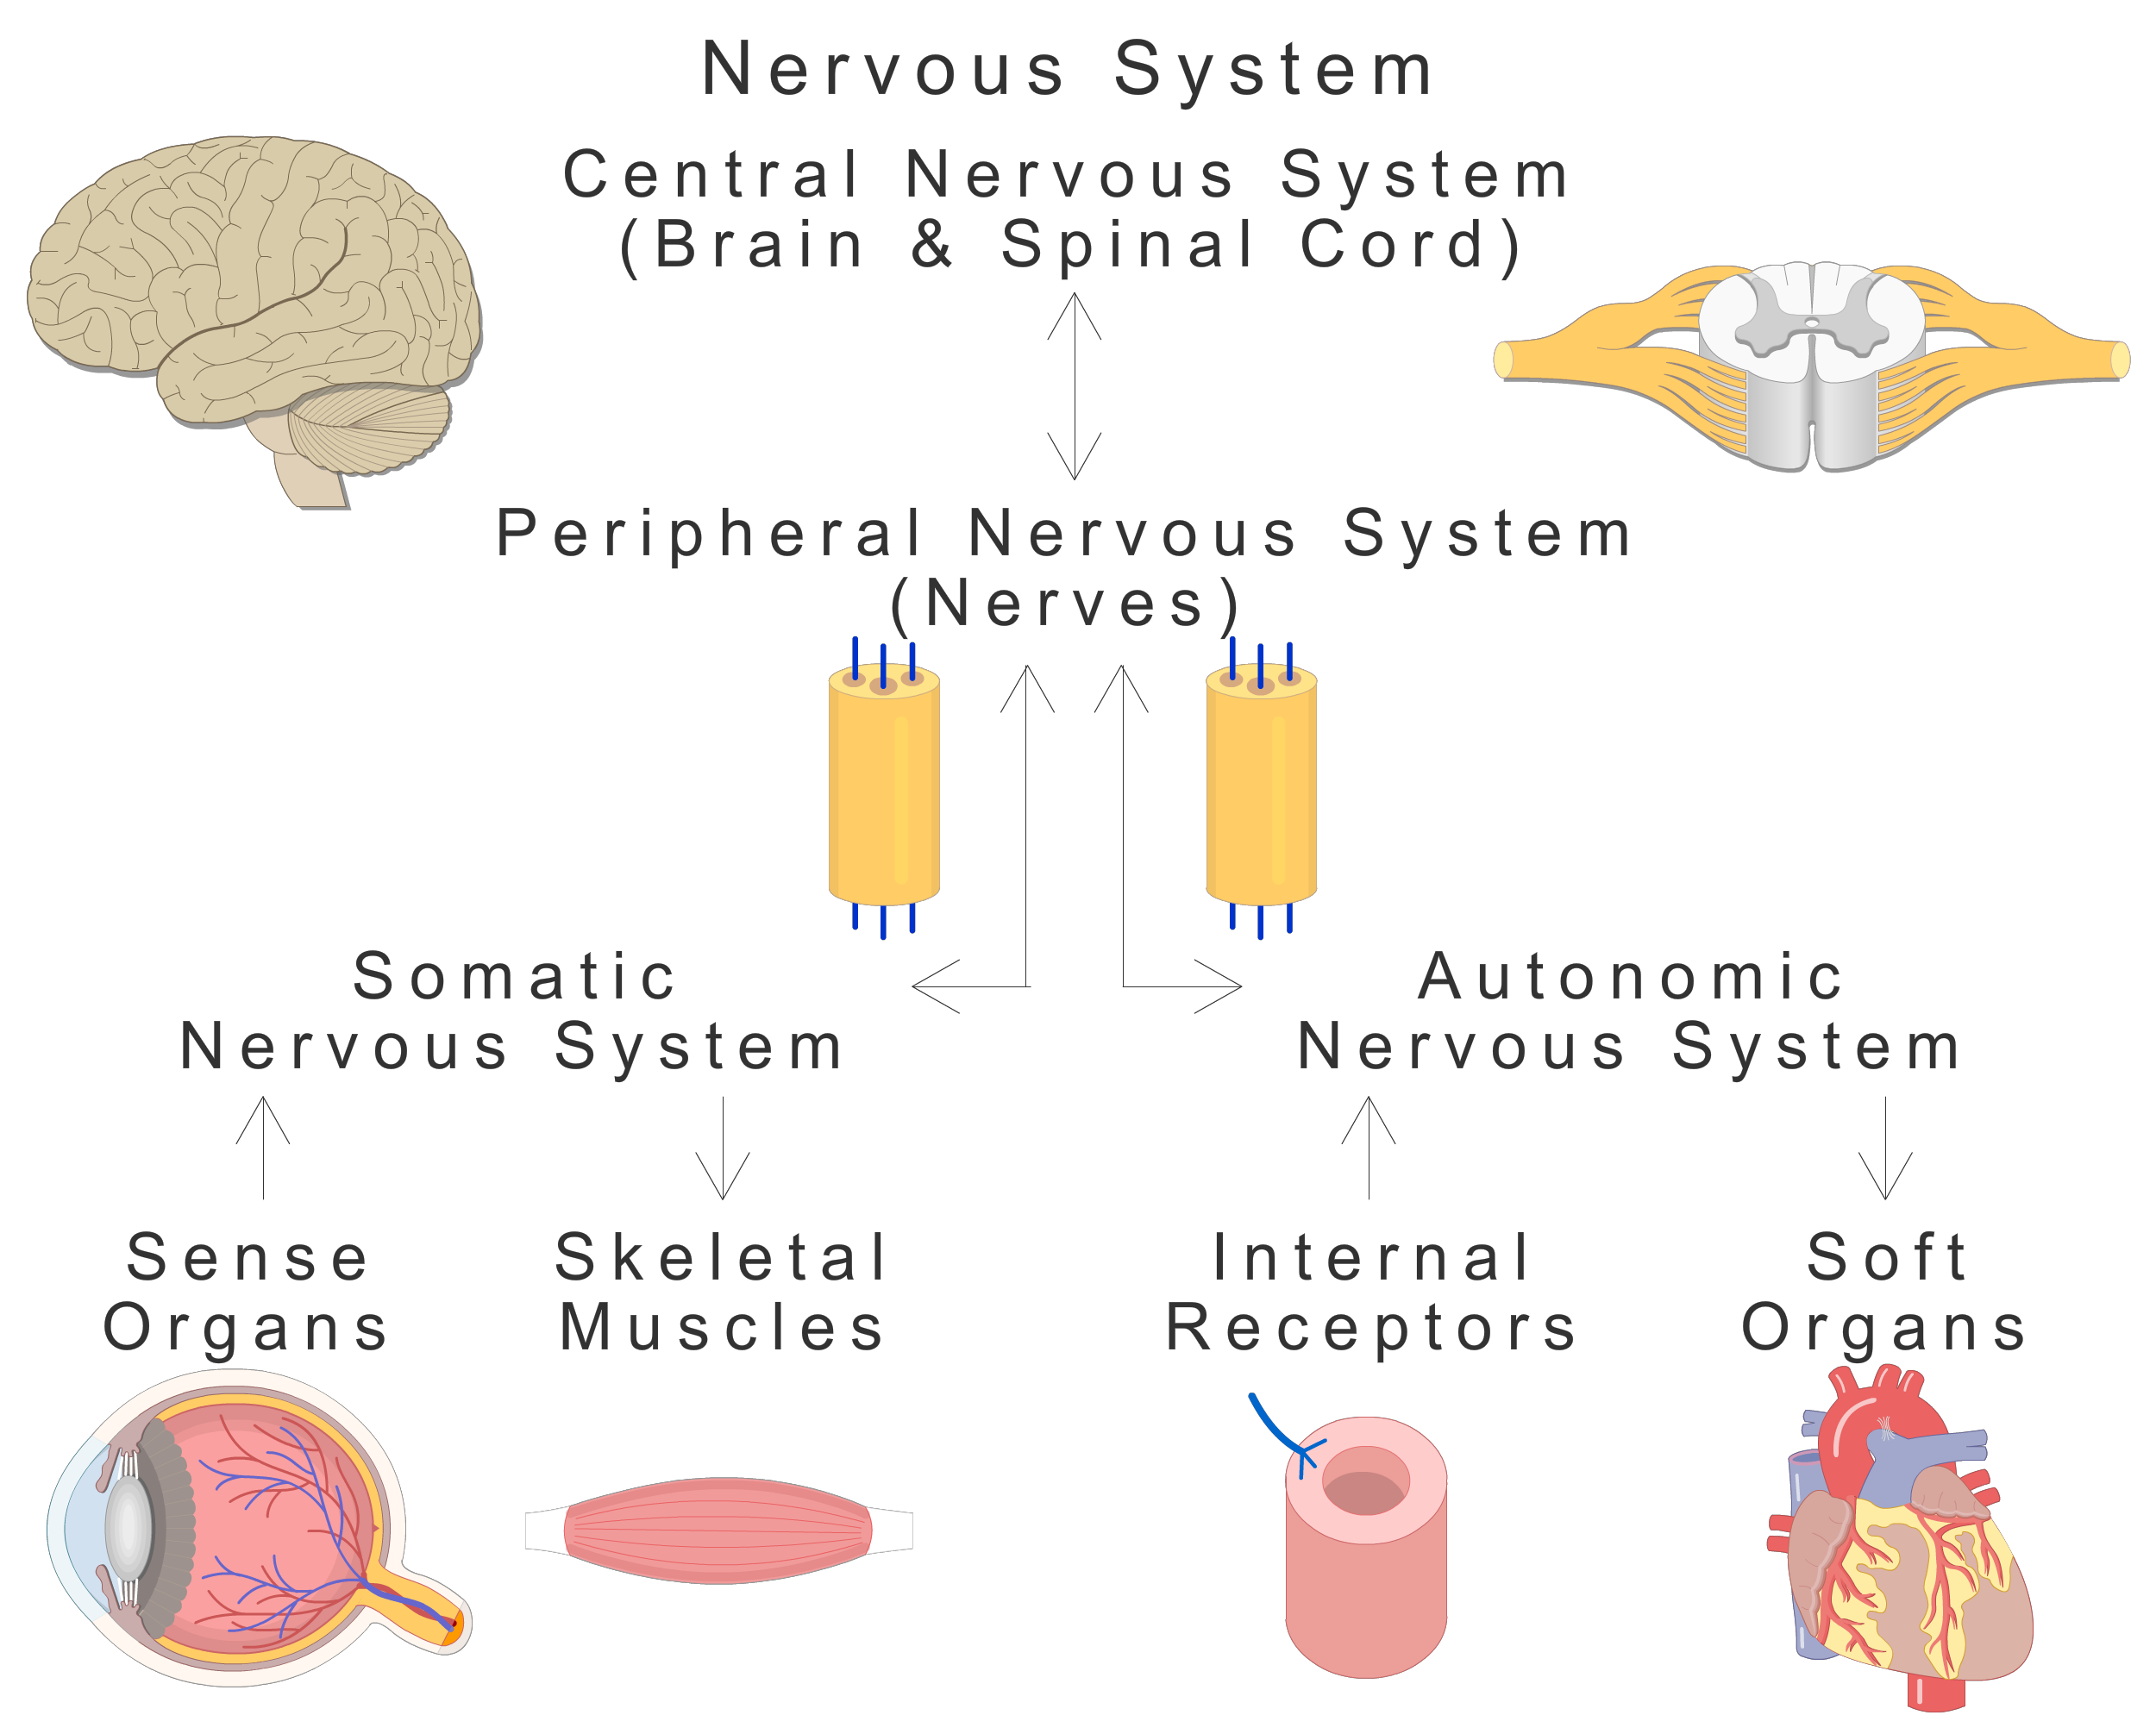 An image showing the basic types of the Nervous system (CNS and PNS) and their subtypes